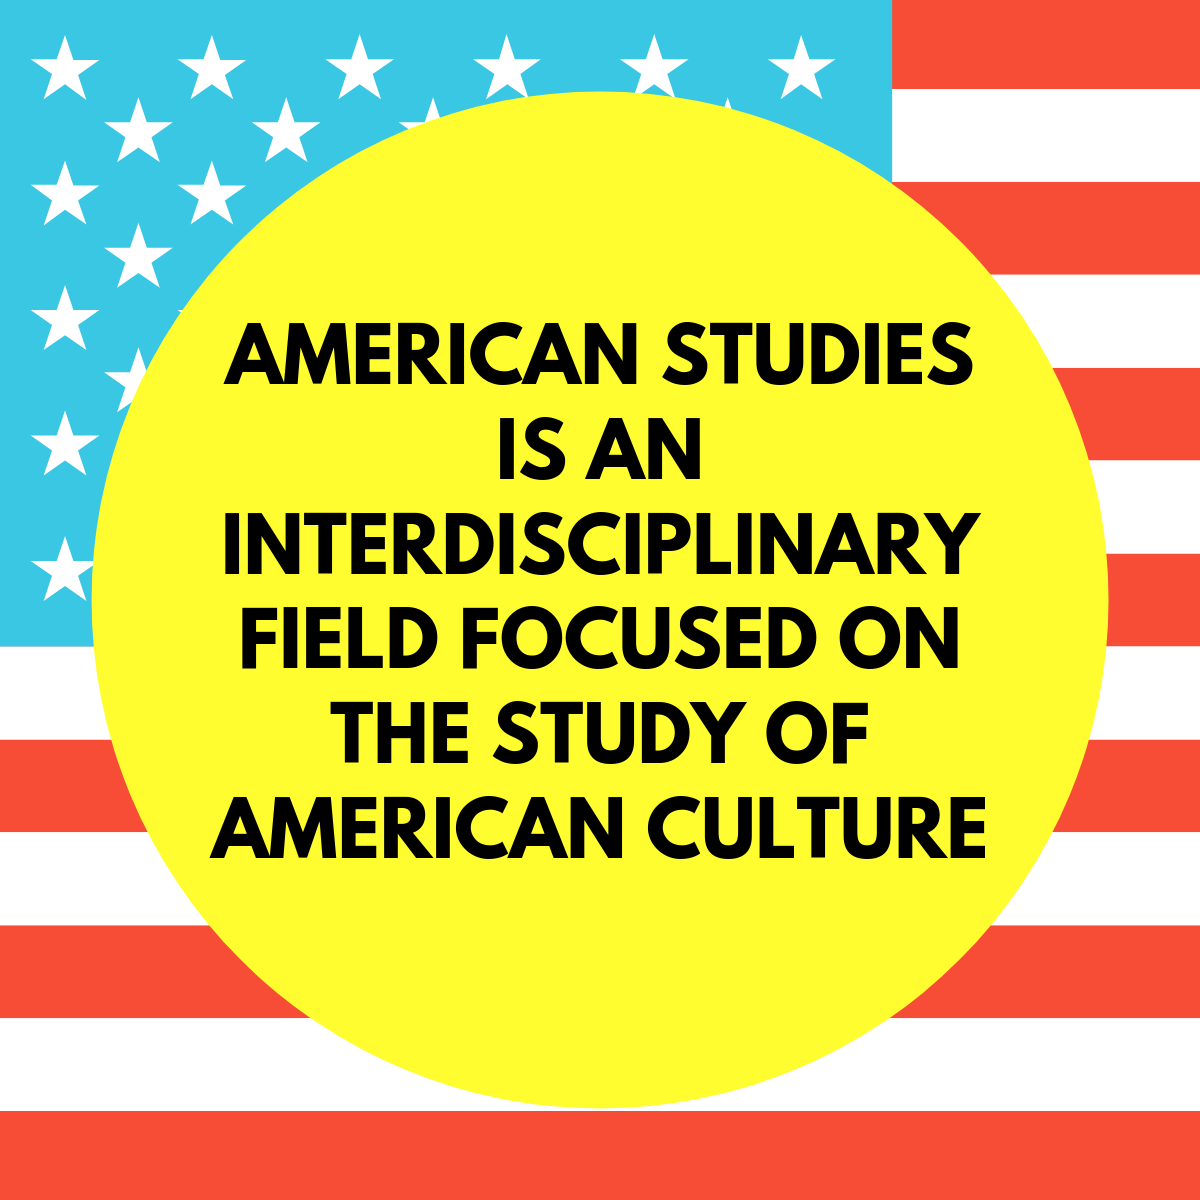 americanstudies1alternative